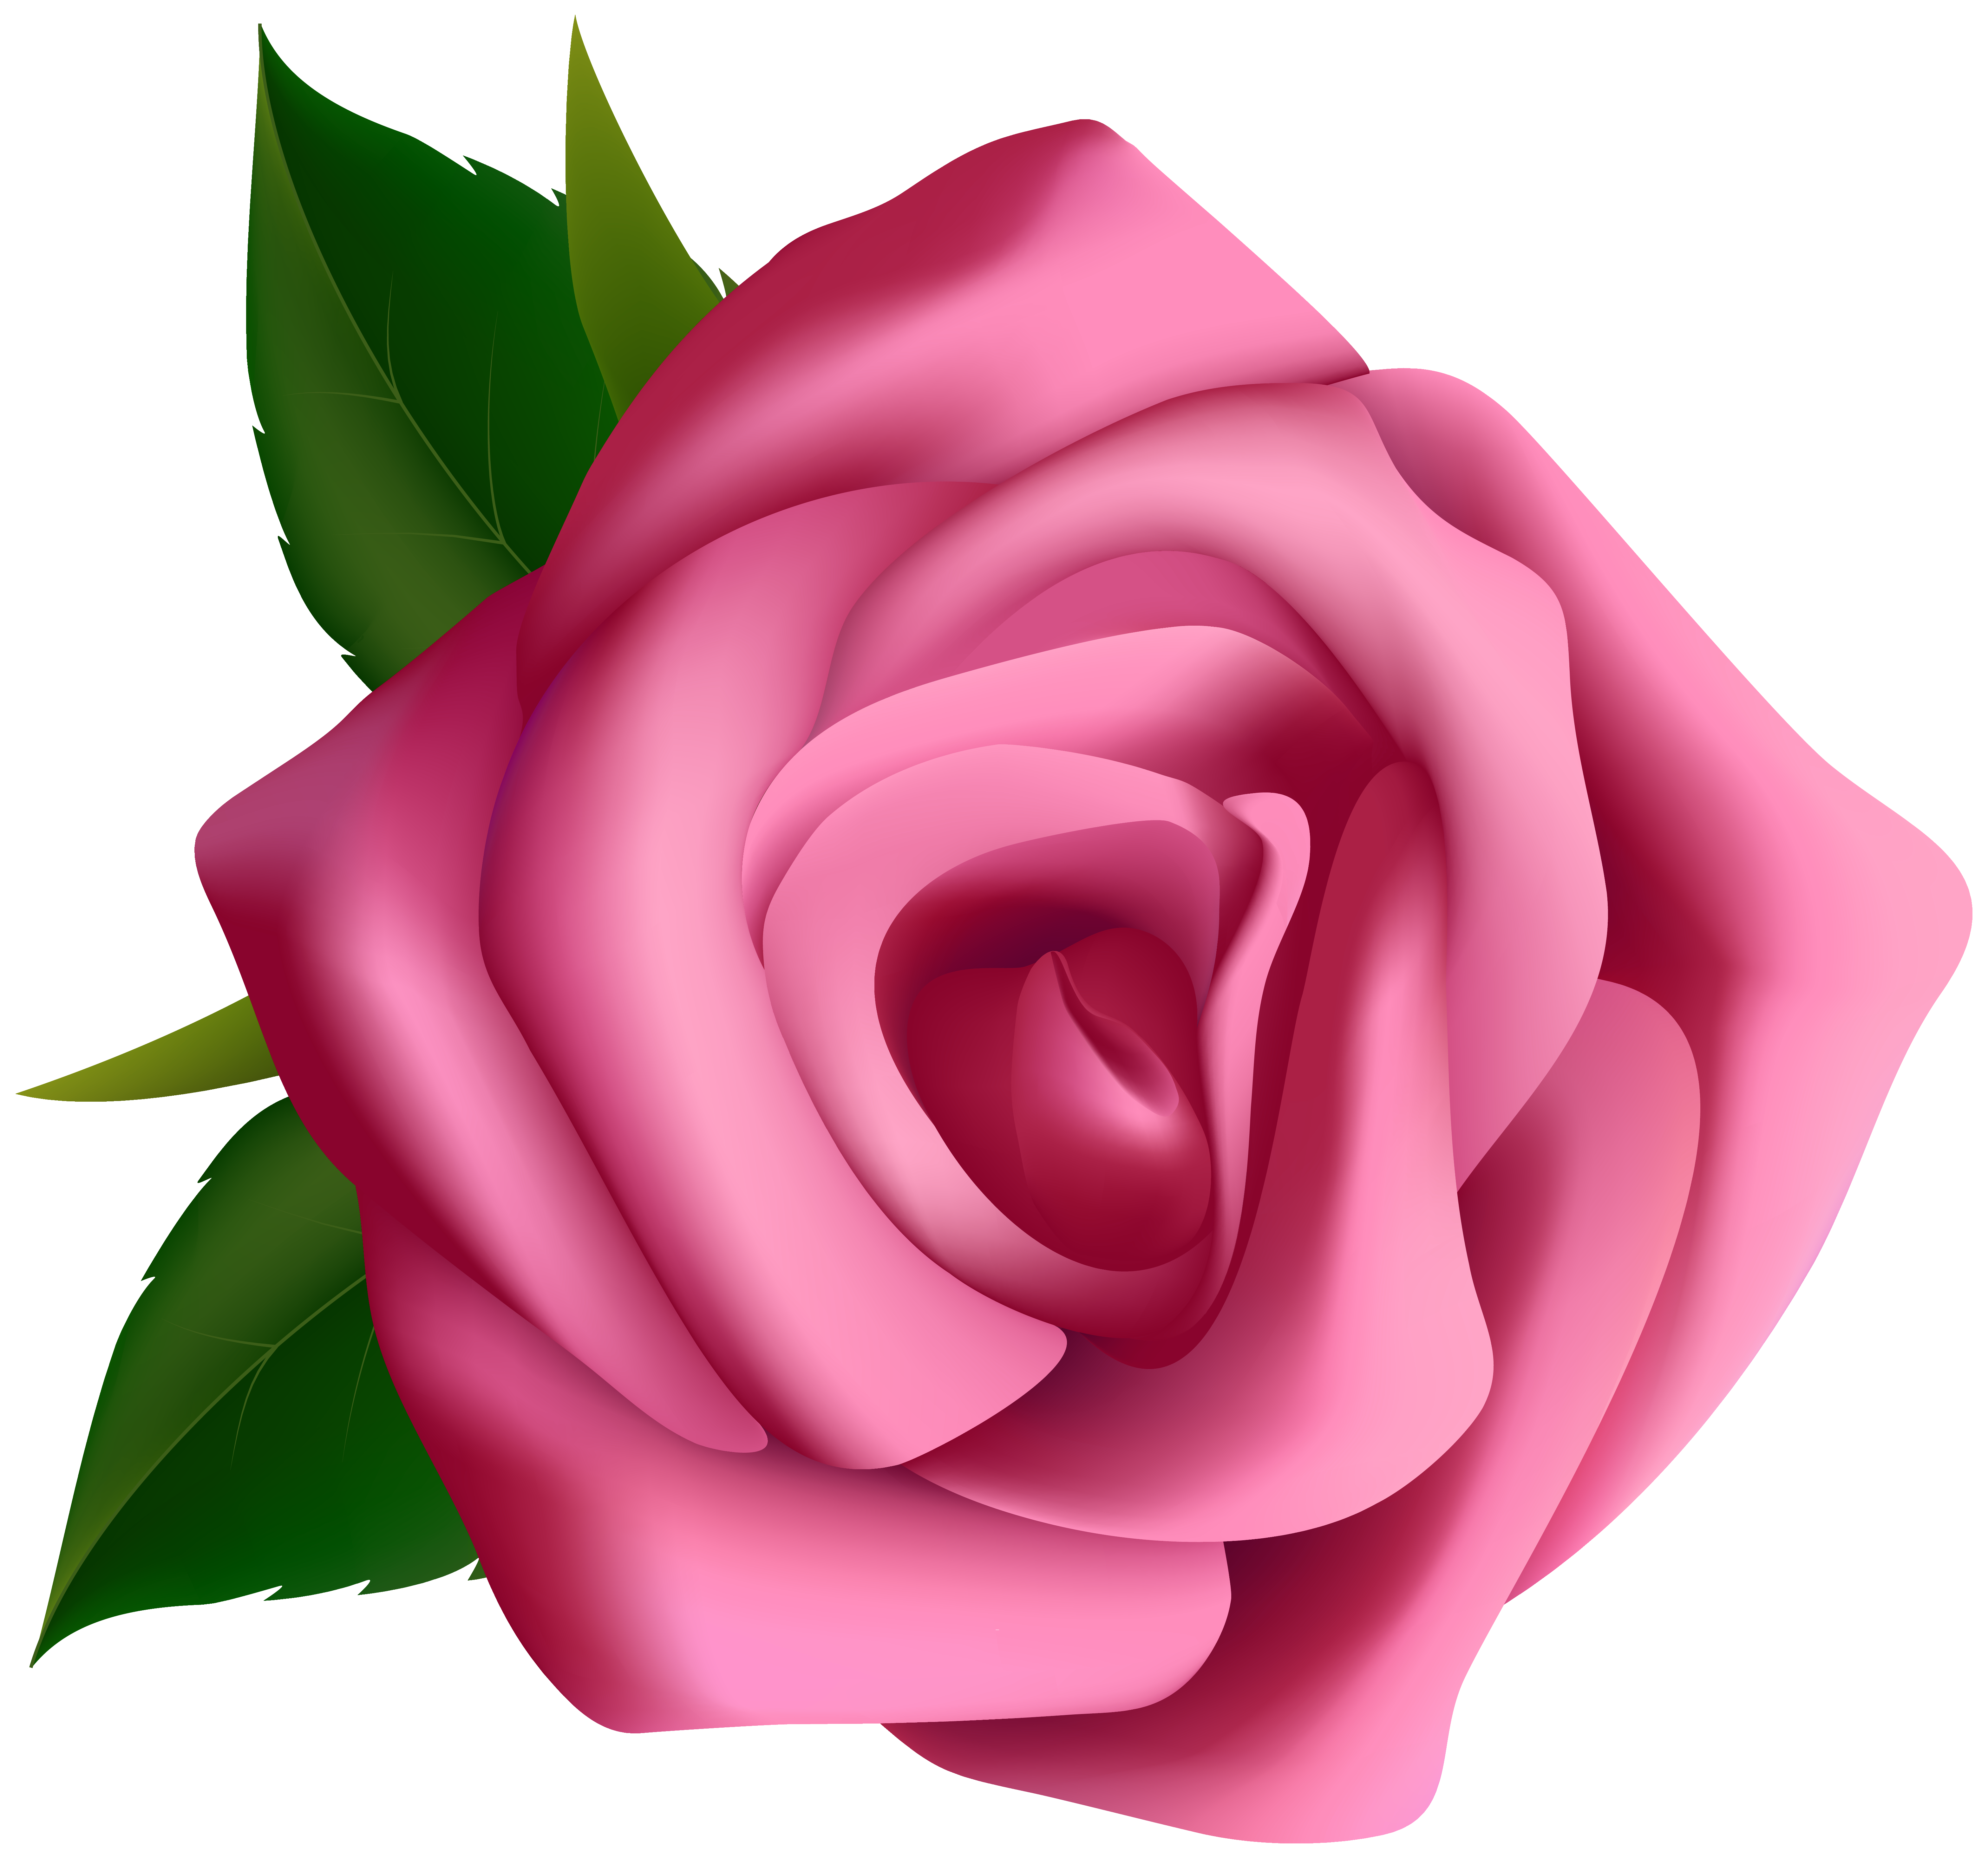 Rose clipart. Pink png image gallery